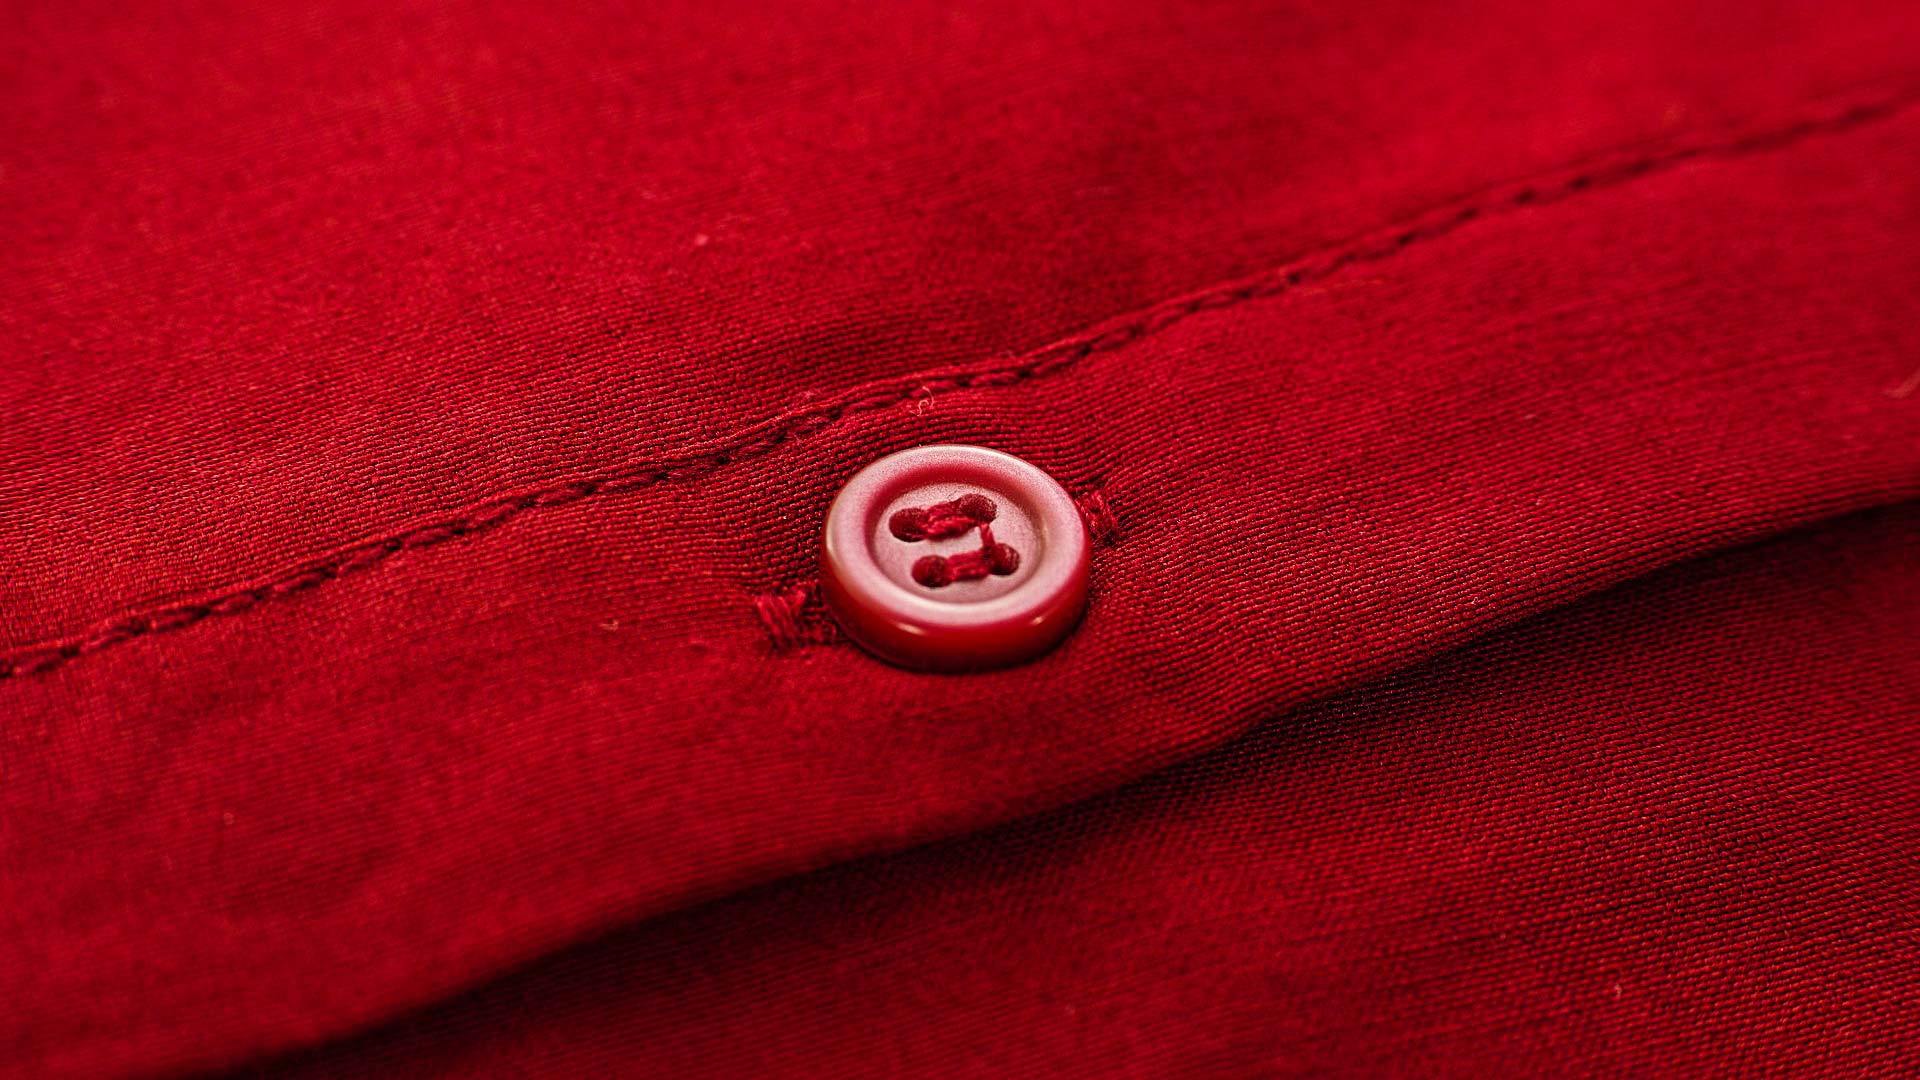 A button on red fabric.